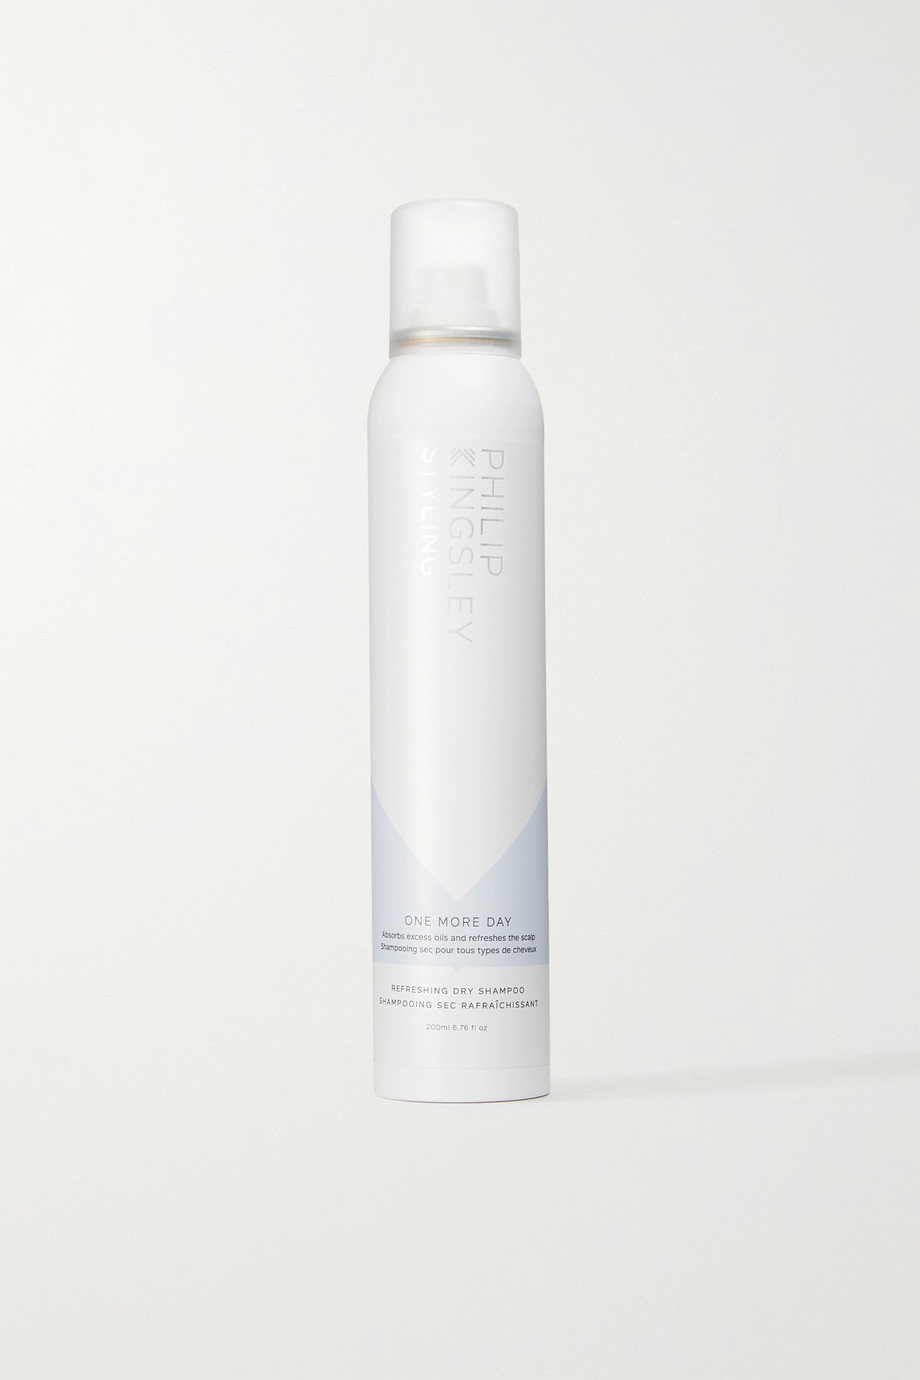 PHILIP KINGSLEY One More Day Dry Shampoo, 200ml